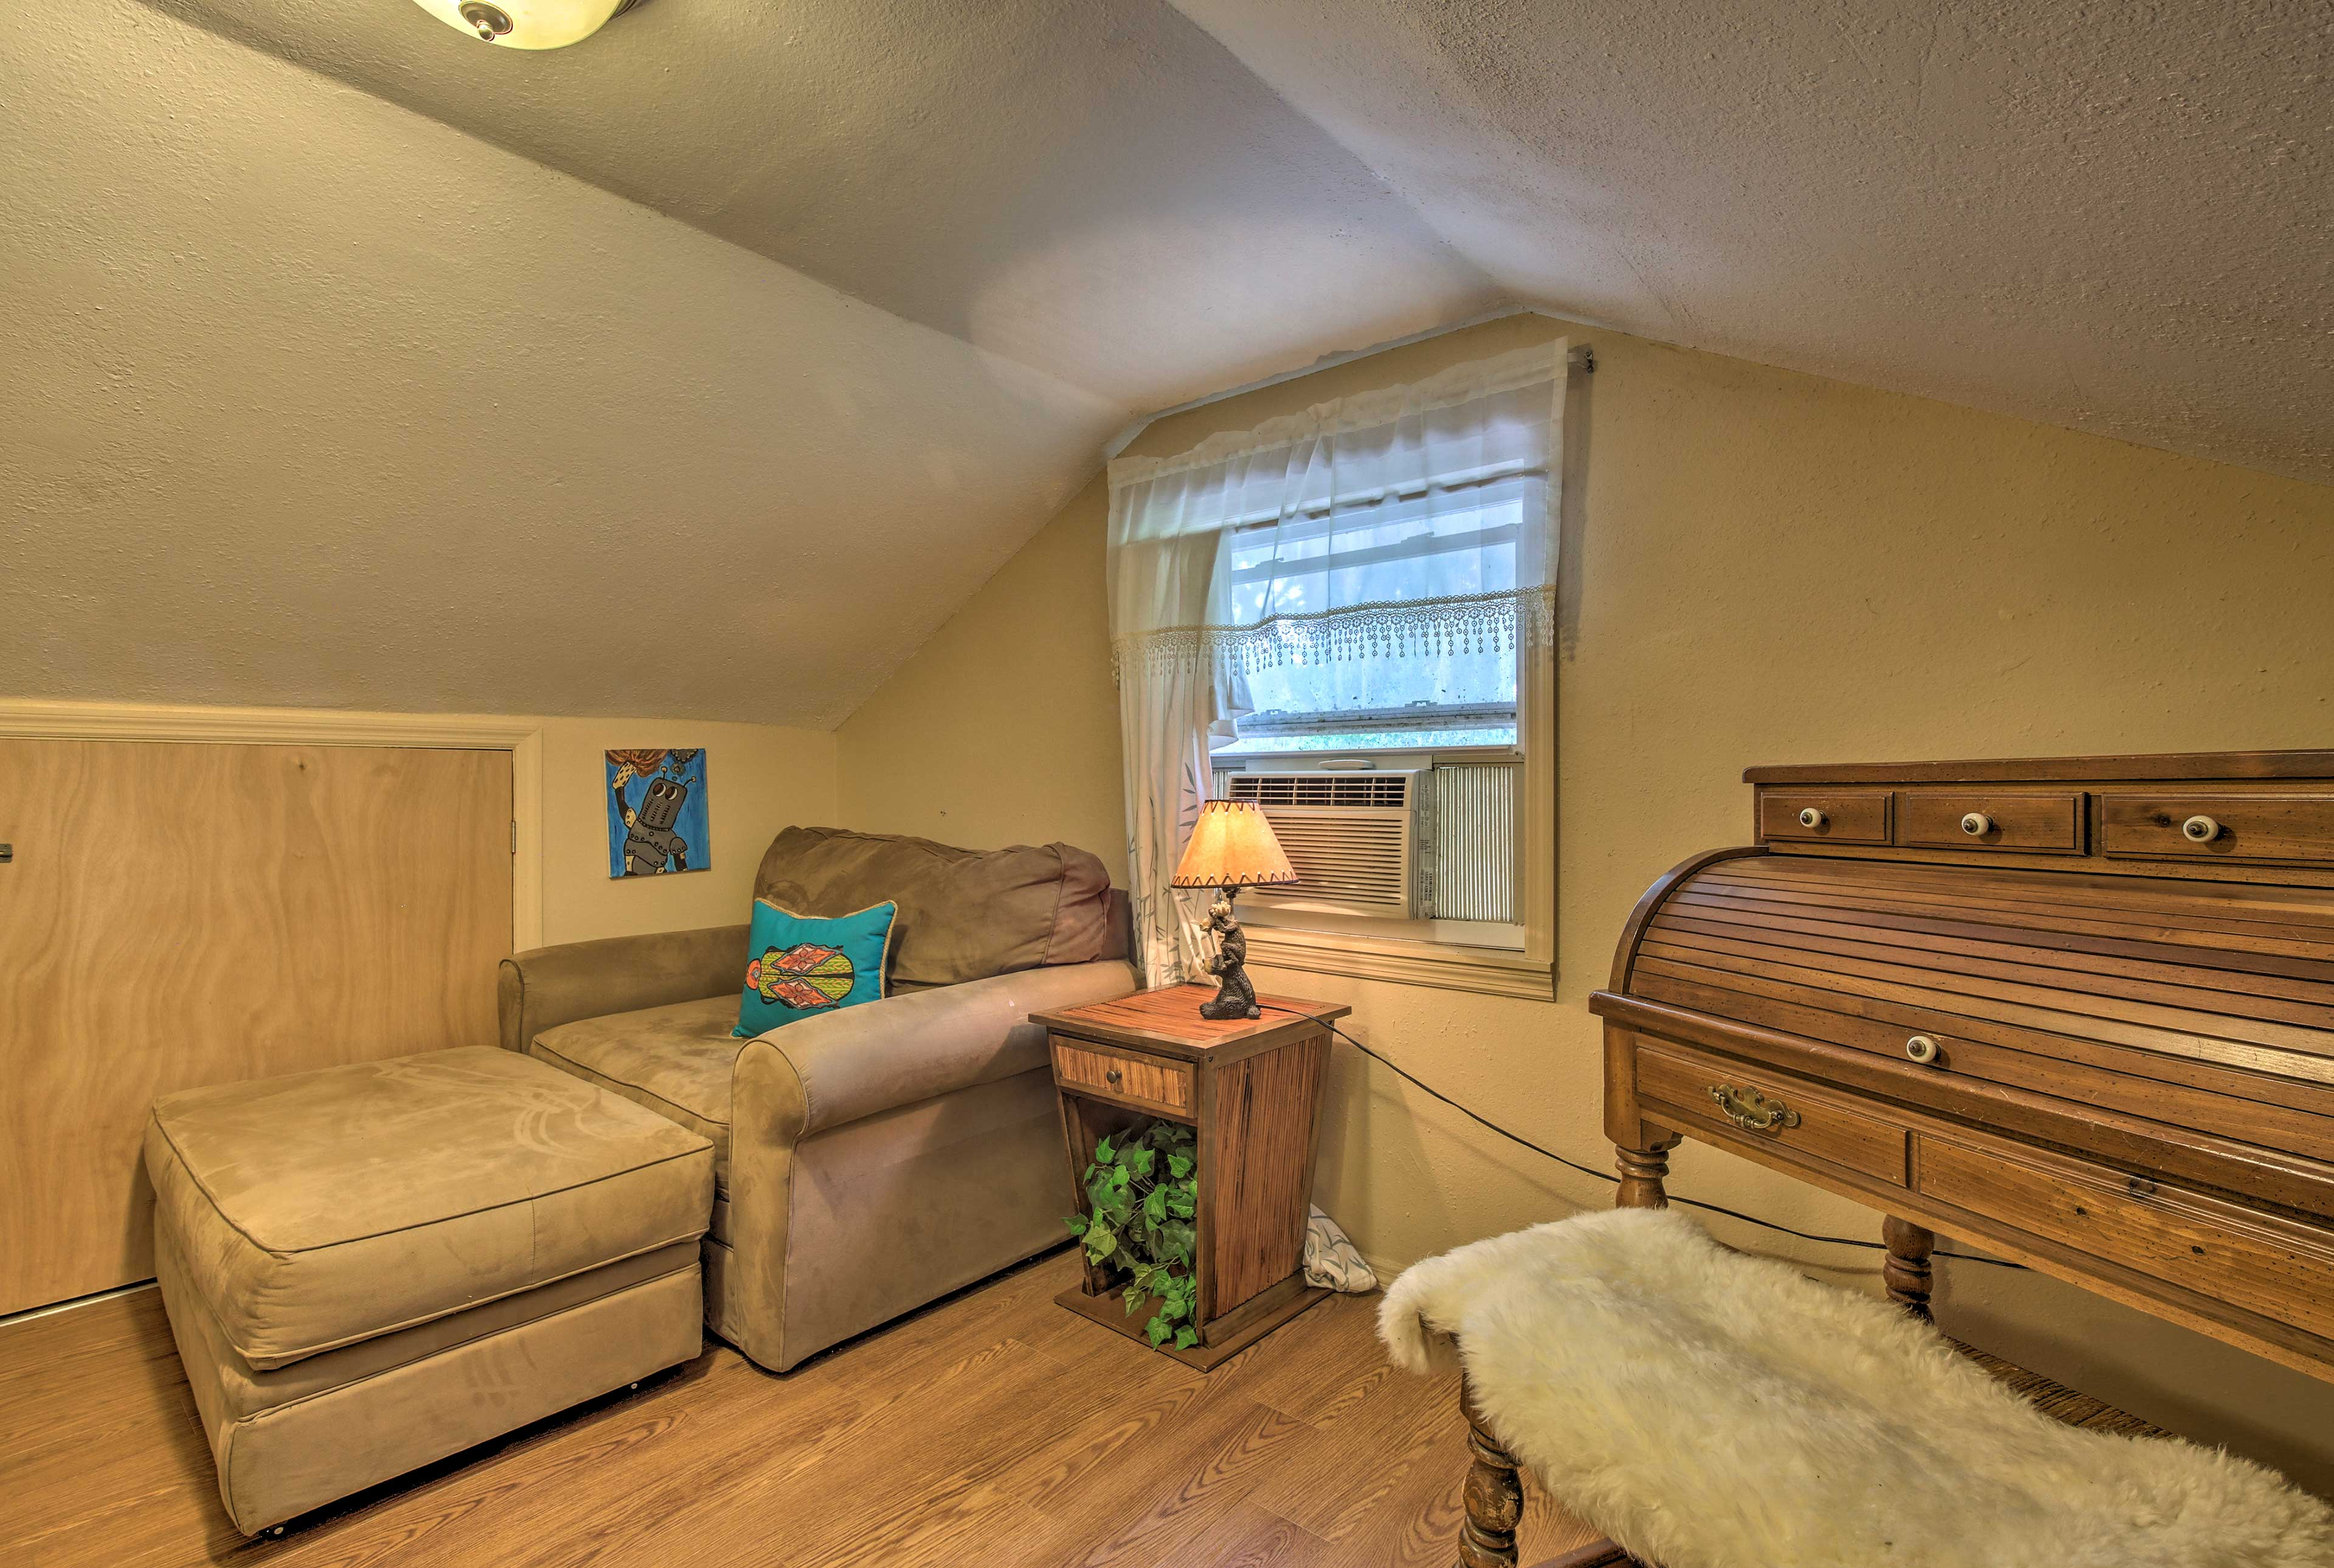 The kid's room upstairs features a plush couch that also pulls out into a bed.